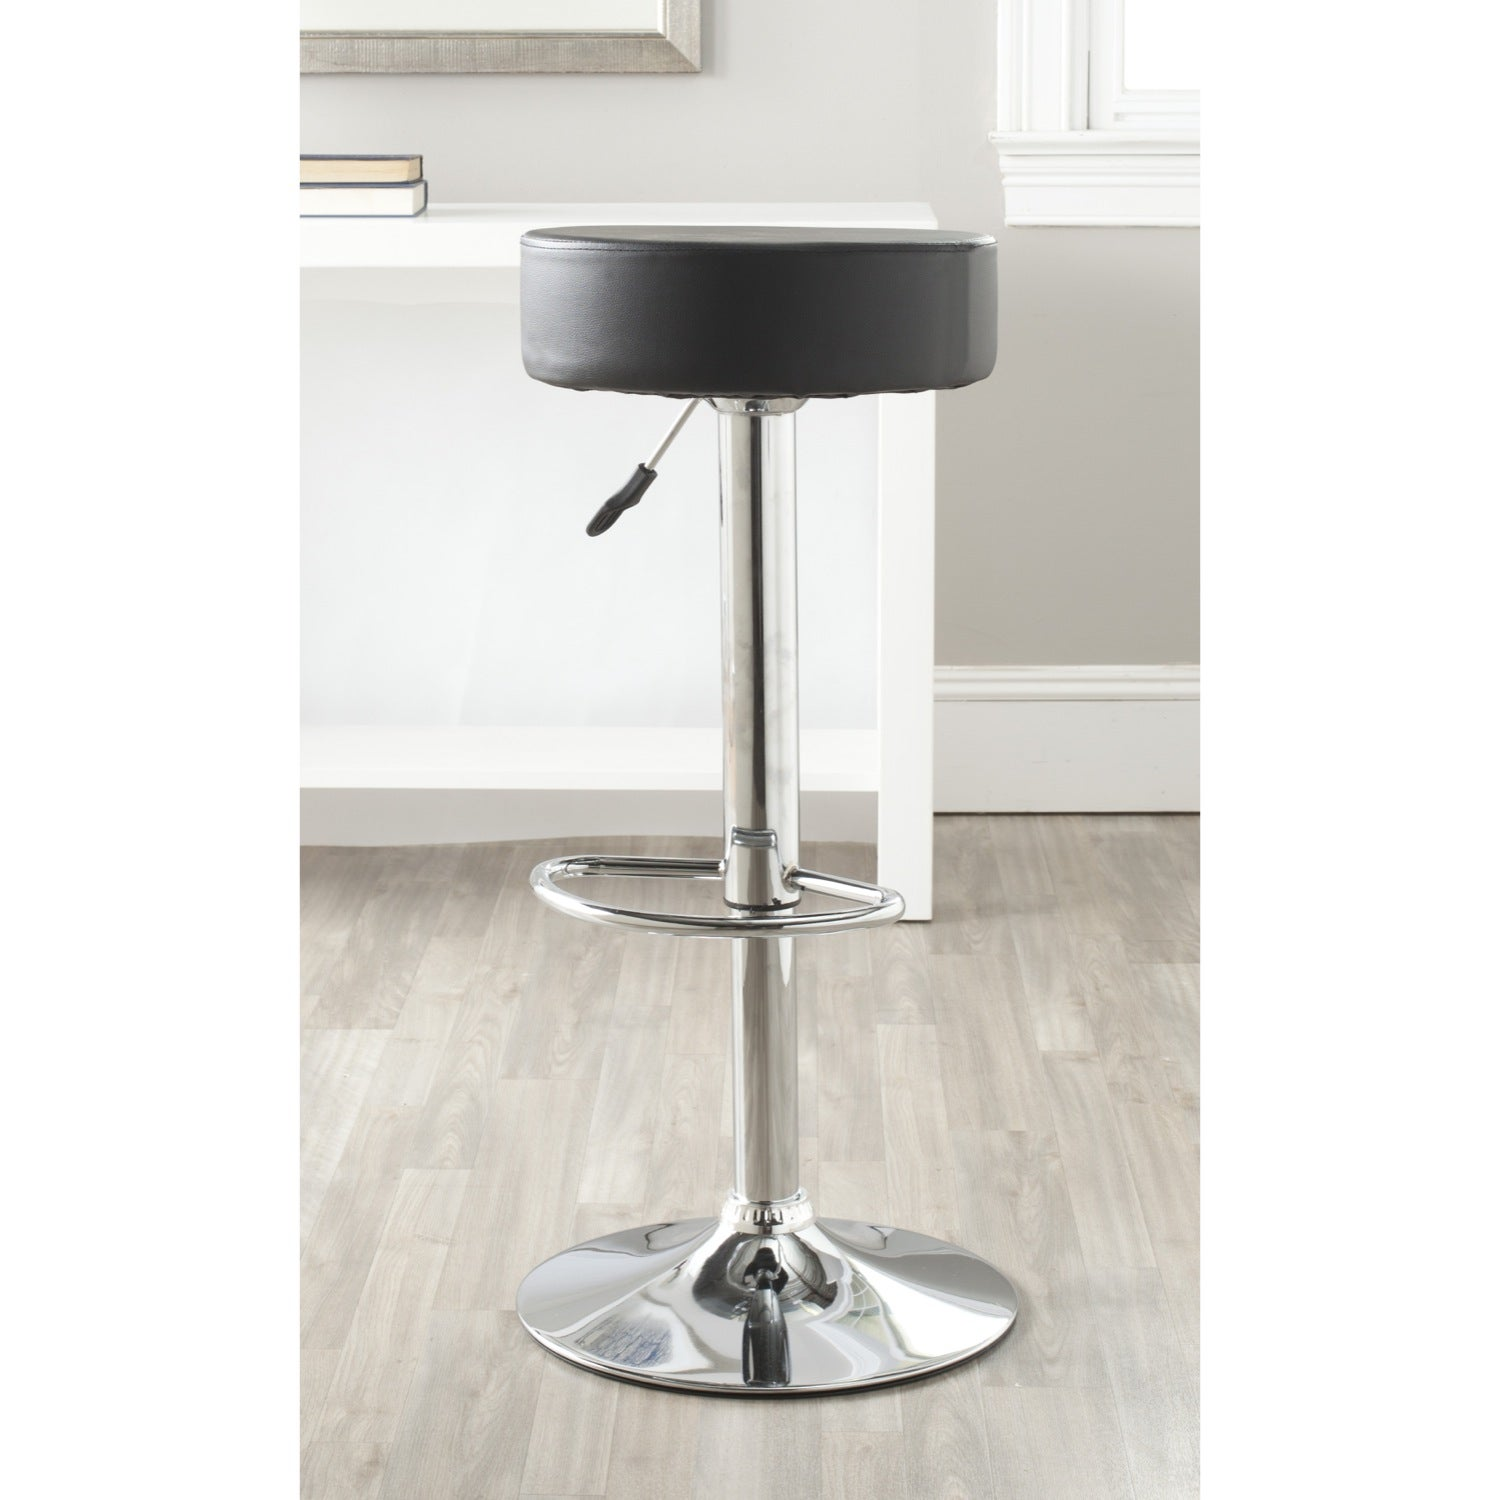 Safavieh Jute Black Adjustable Height Swivel Bar Stool